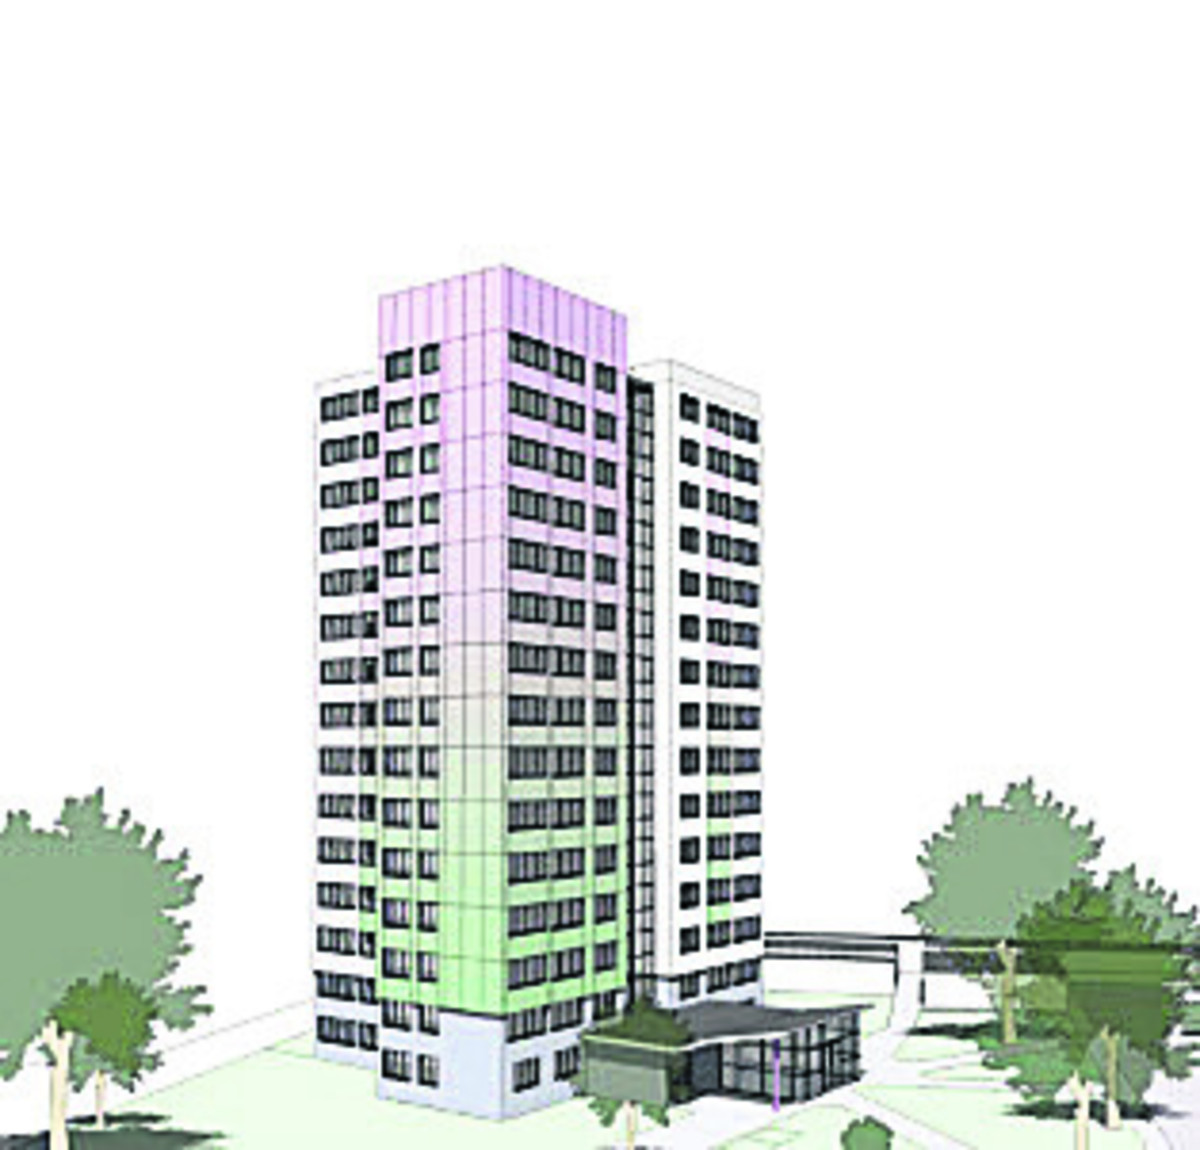 An artist's impression of the changes to Evenlode Tower